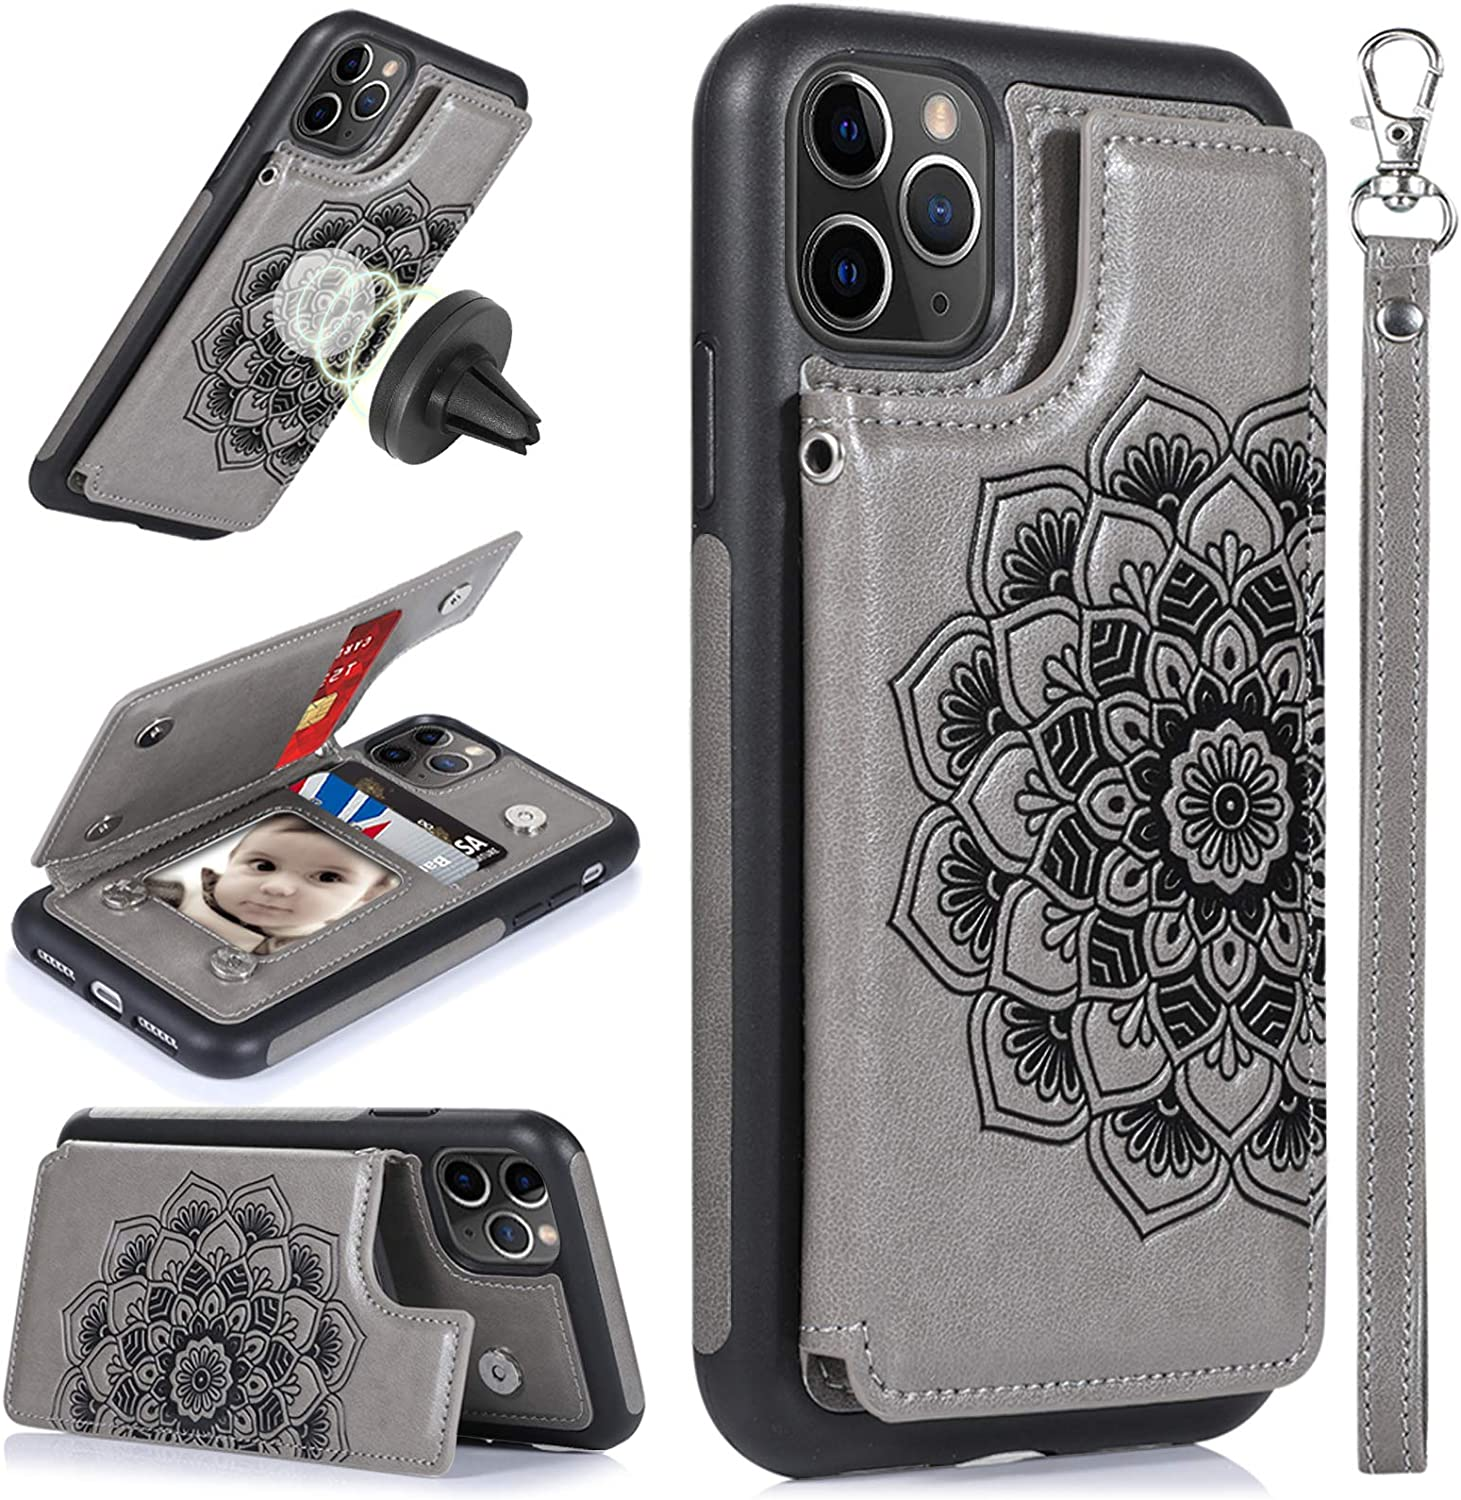 CASEOWL iPhone 11 Pro Max Case,Wallet Case with Card Holder,RFID Blocking,Kick Stand,Wrist Strap,Fit Magnetic Car Mount,Mandala Embossed Leather Back Flip Cover Case for iPhone 11 Pro Max(2019),Gray